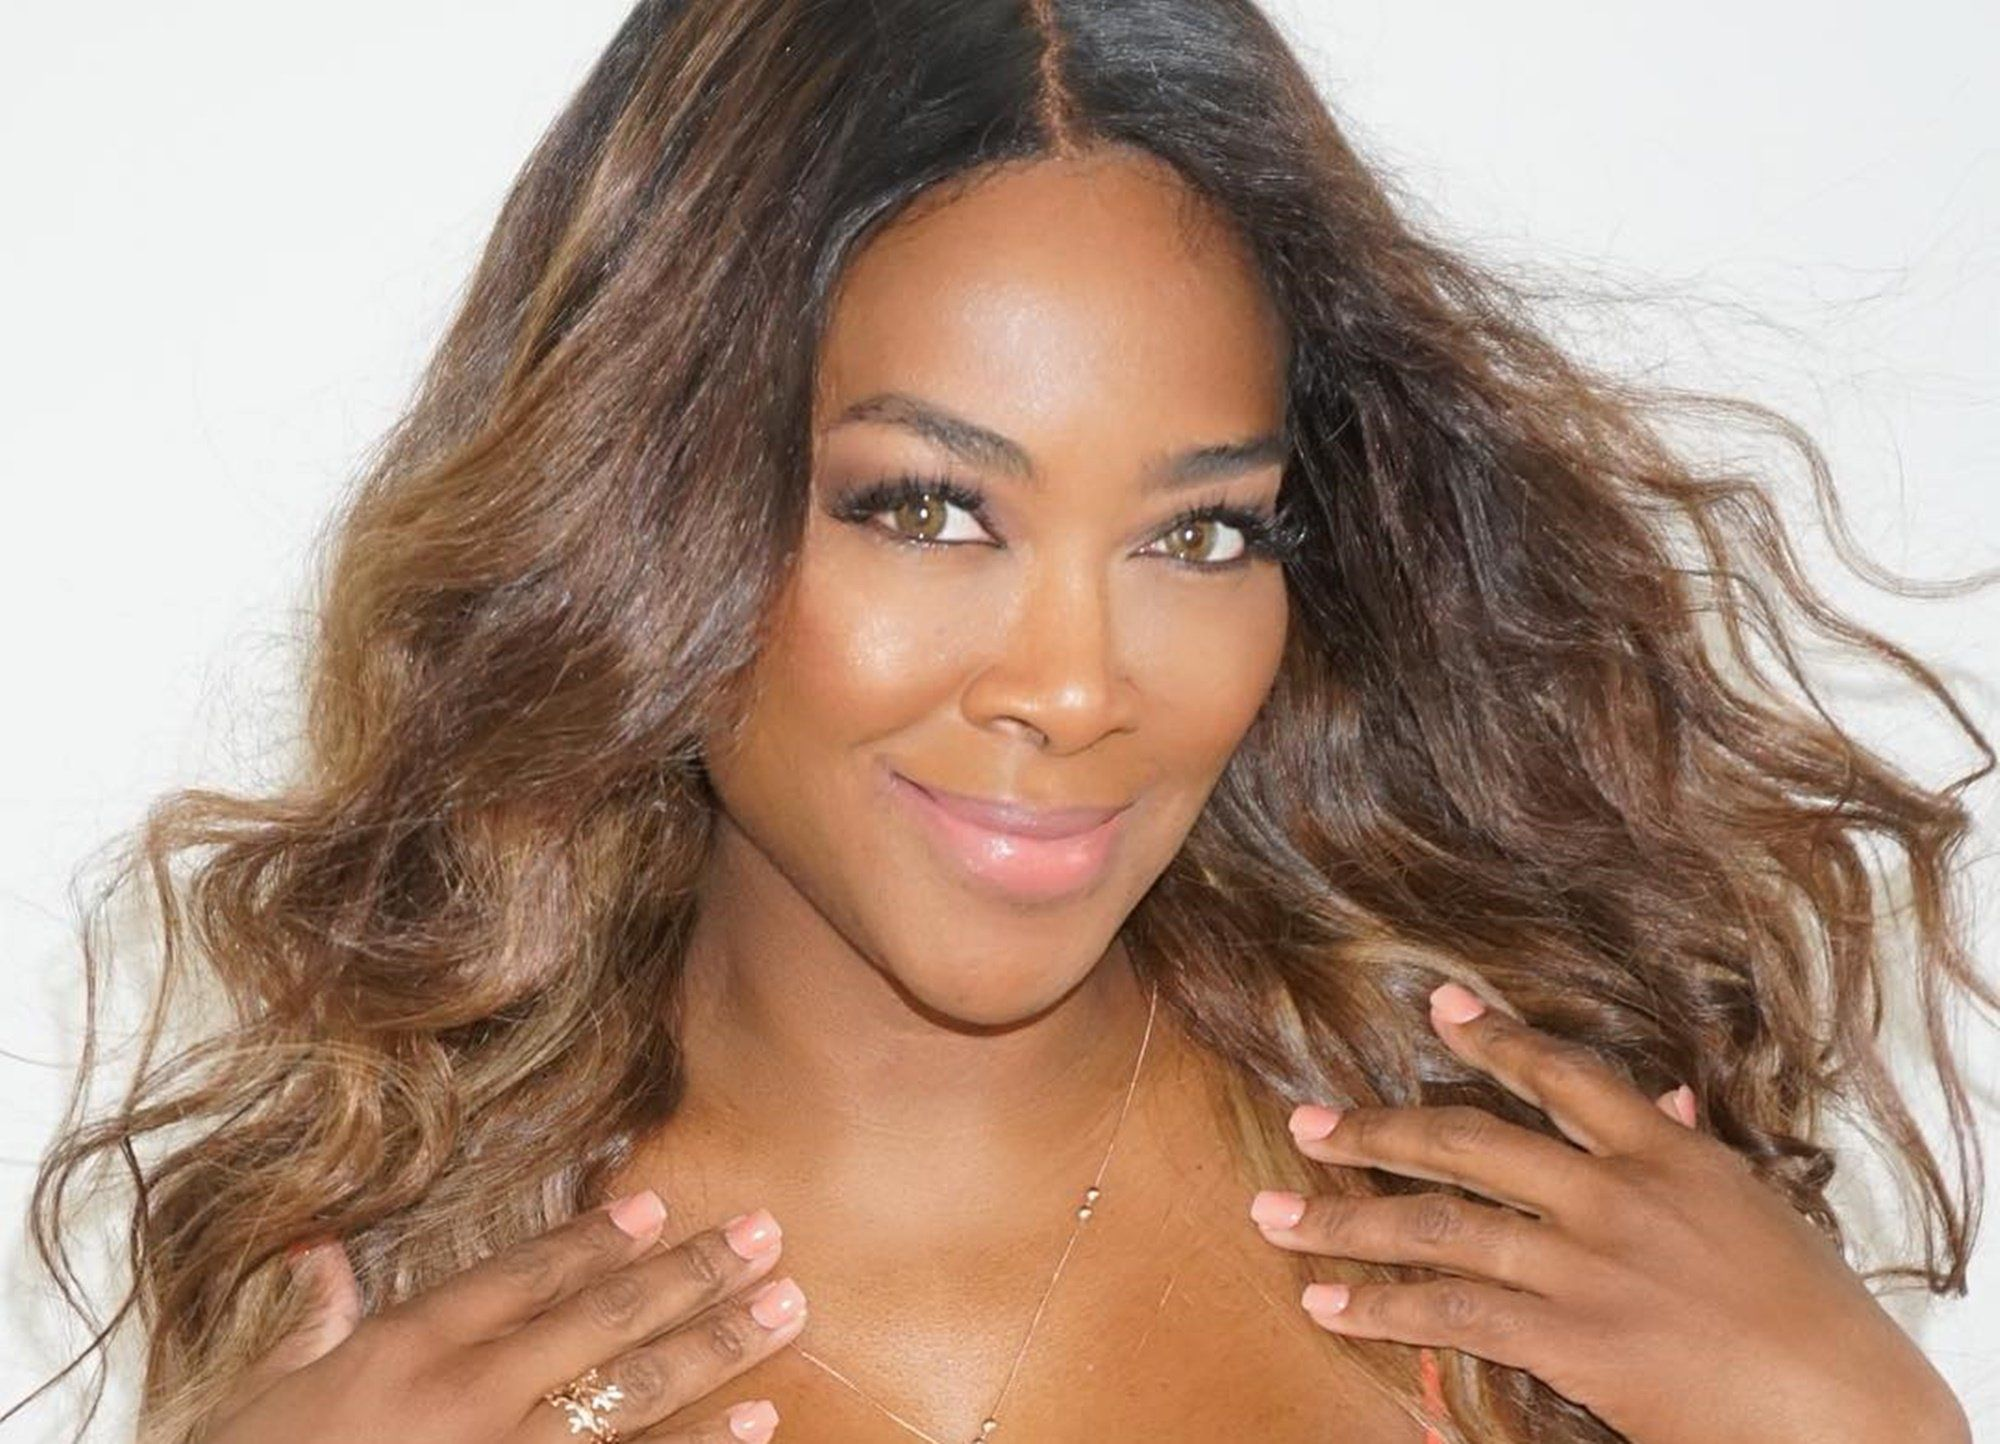 Kenya Moore's Fans Are In Love With Her Natural No Makeup Look - See Her Latest Photo